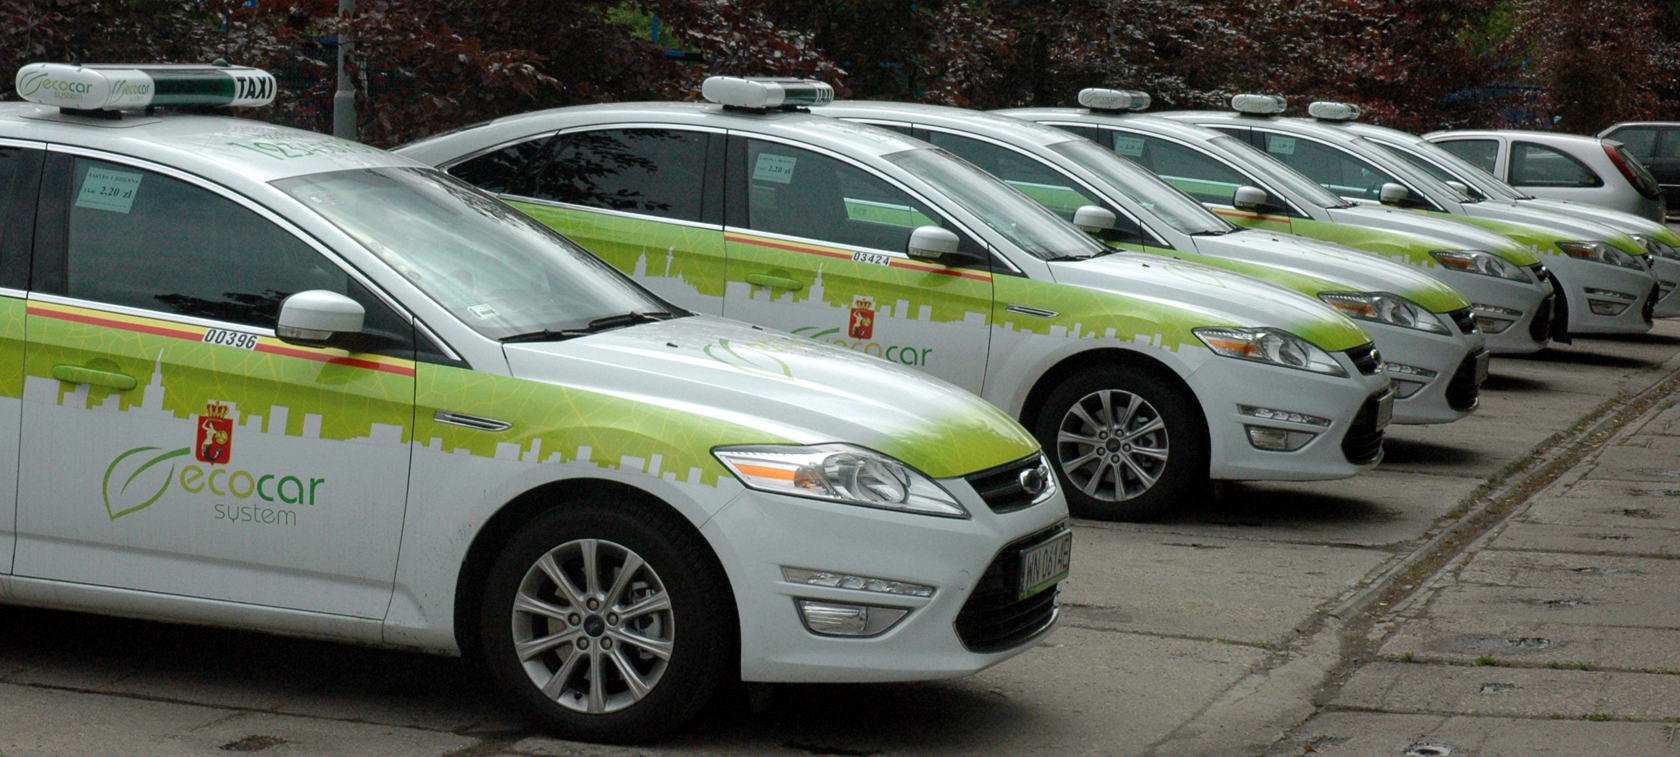 EcoCar System - tomorrow's taxis today